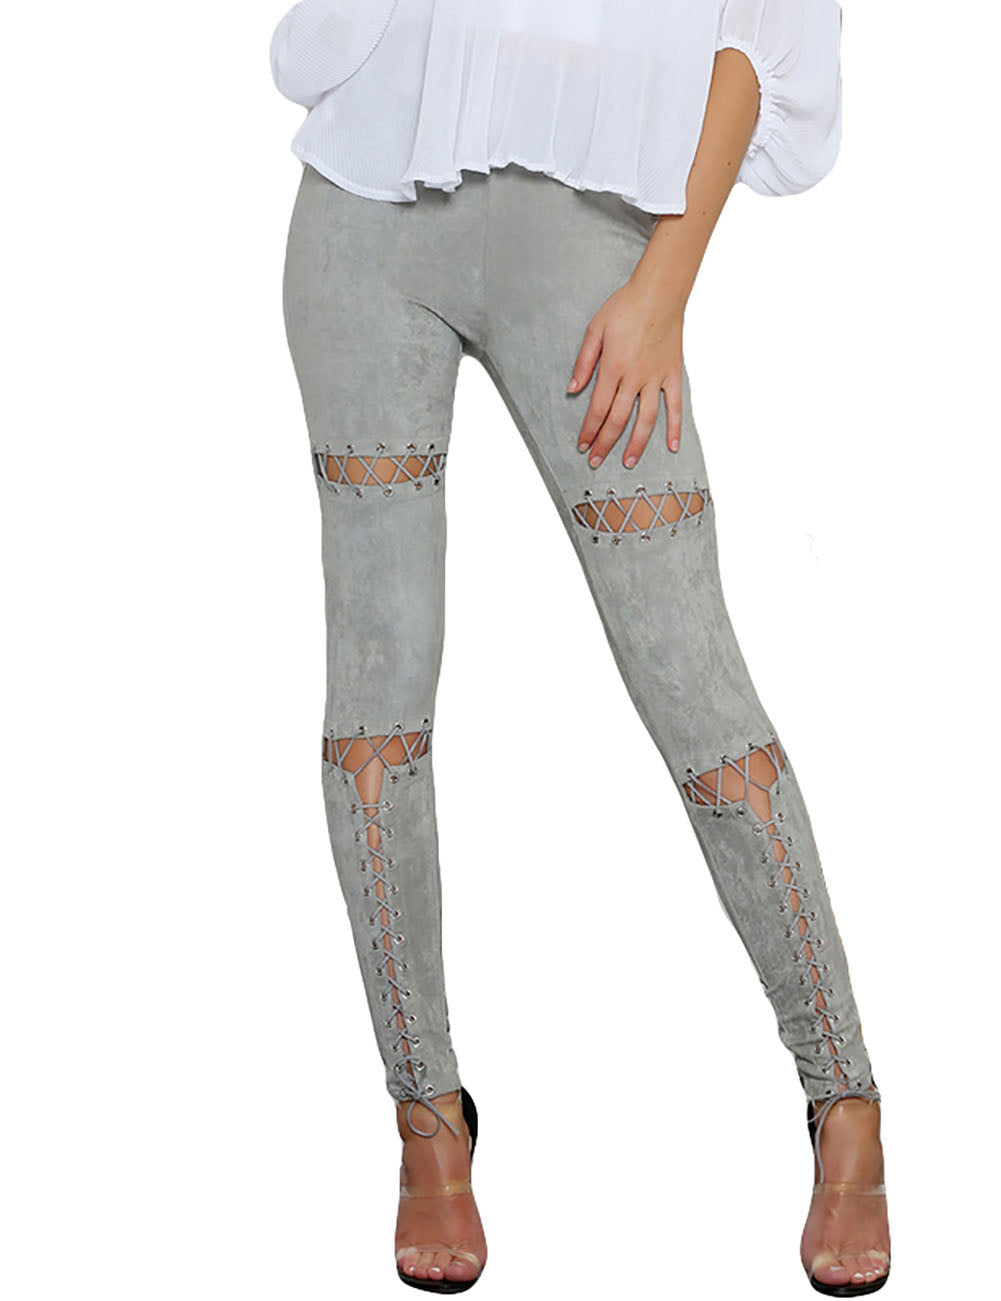 Unforgettable Ripped Leg Pants Ankle Length High Rise Grade